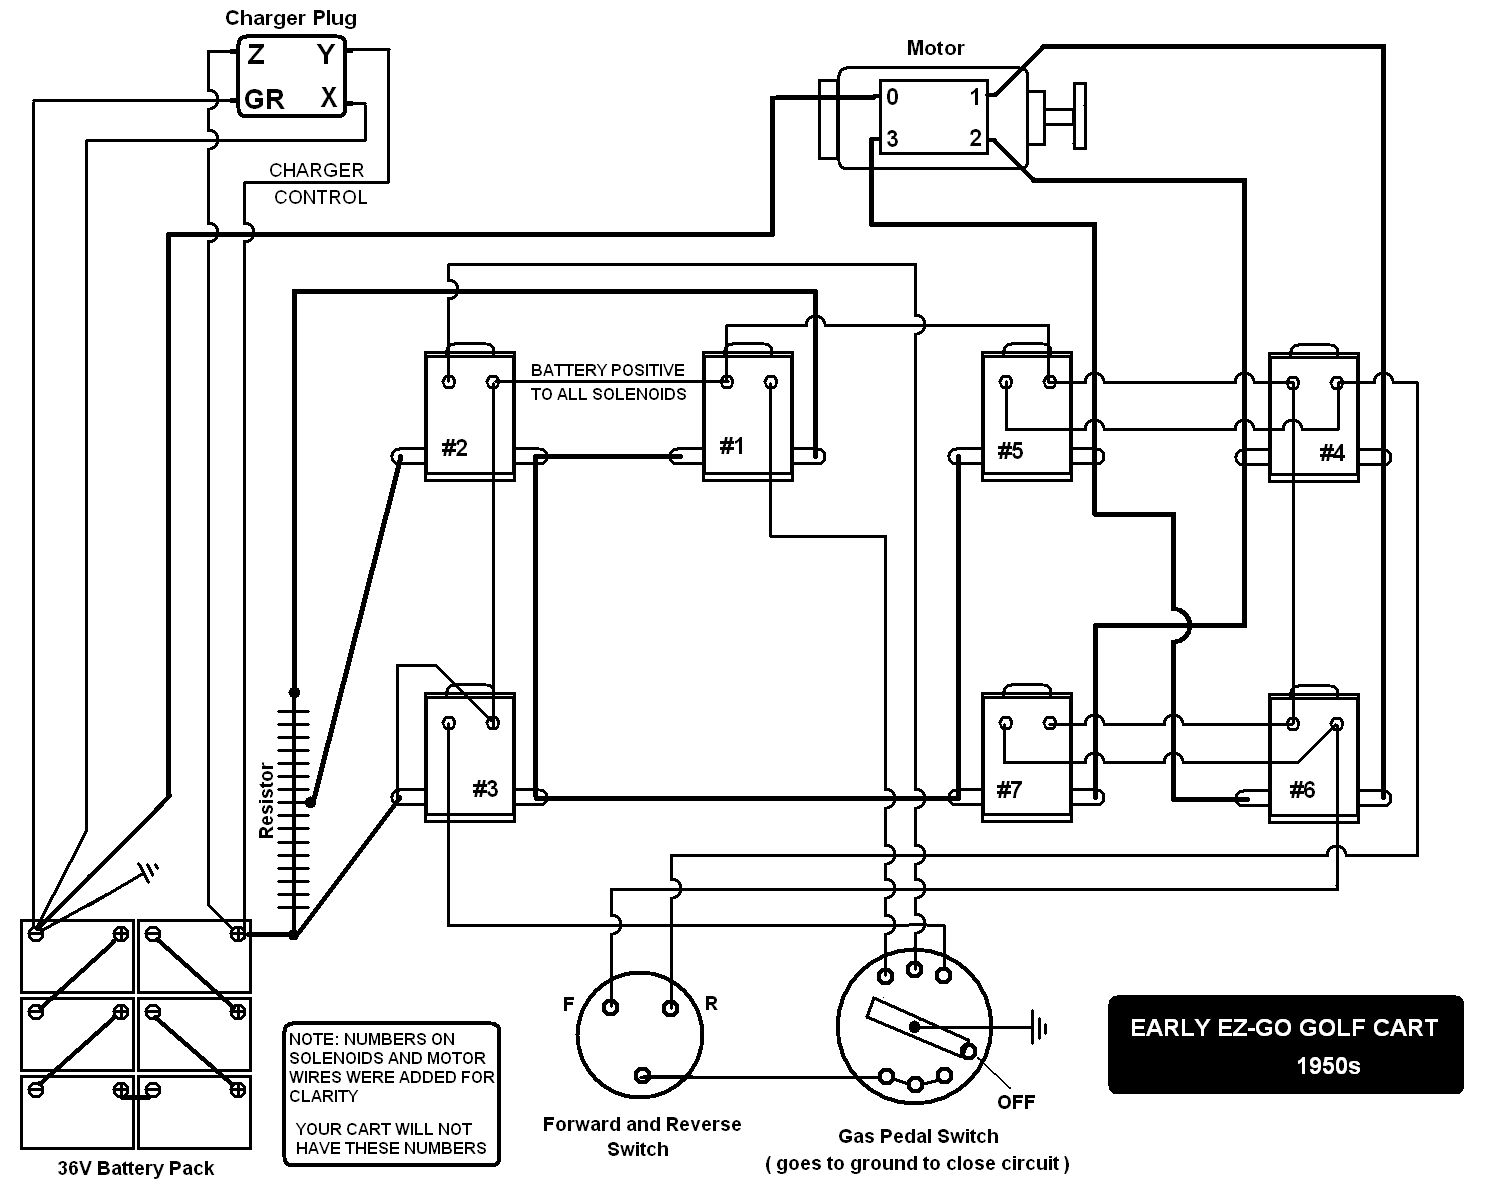 EZ Go Golf Cart Wiring Diagram on forward reverse switch wiring diagram